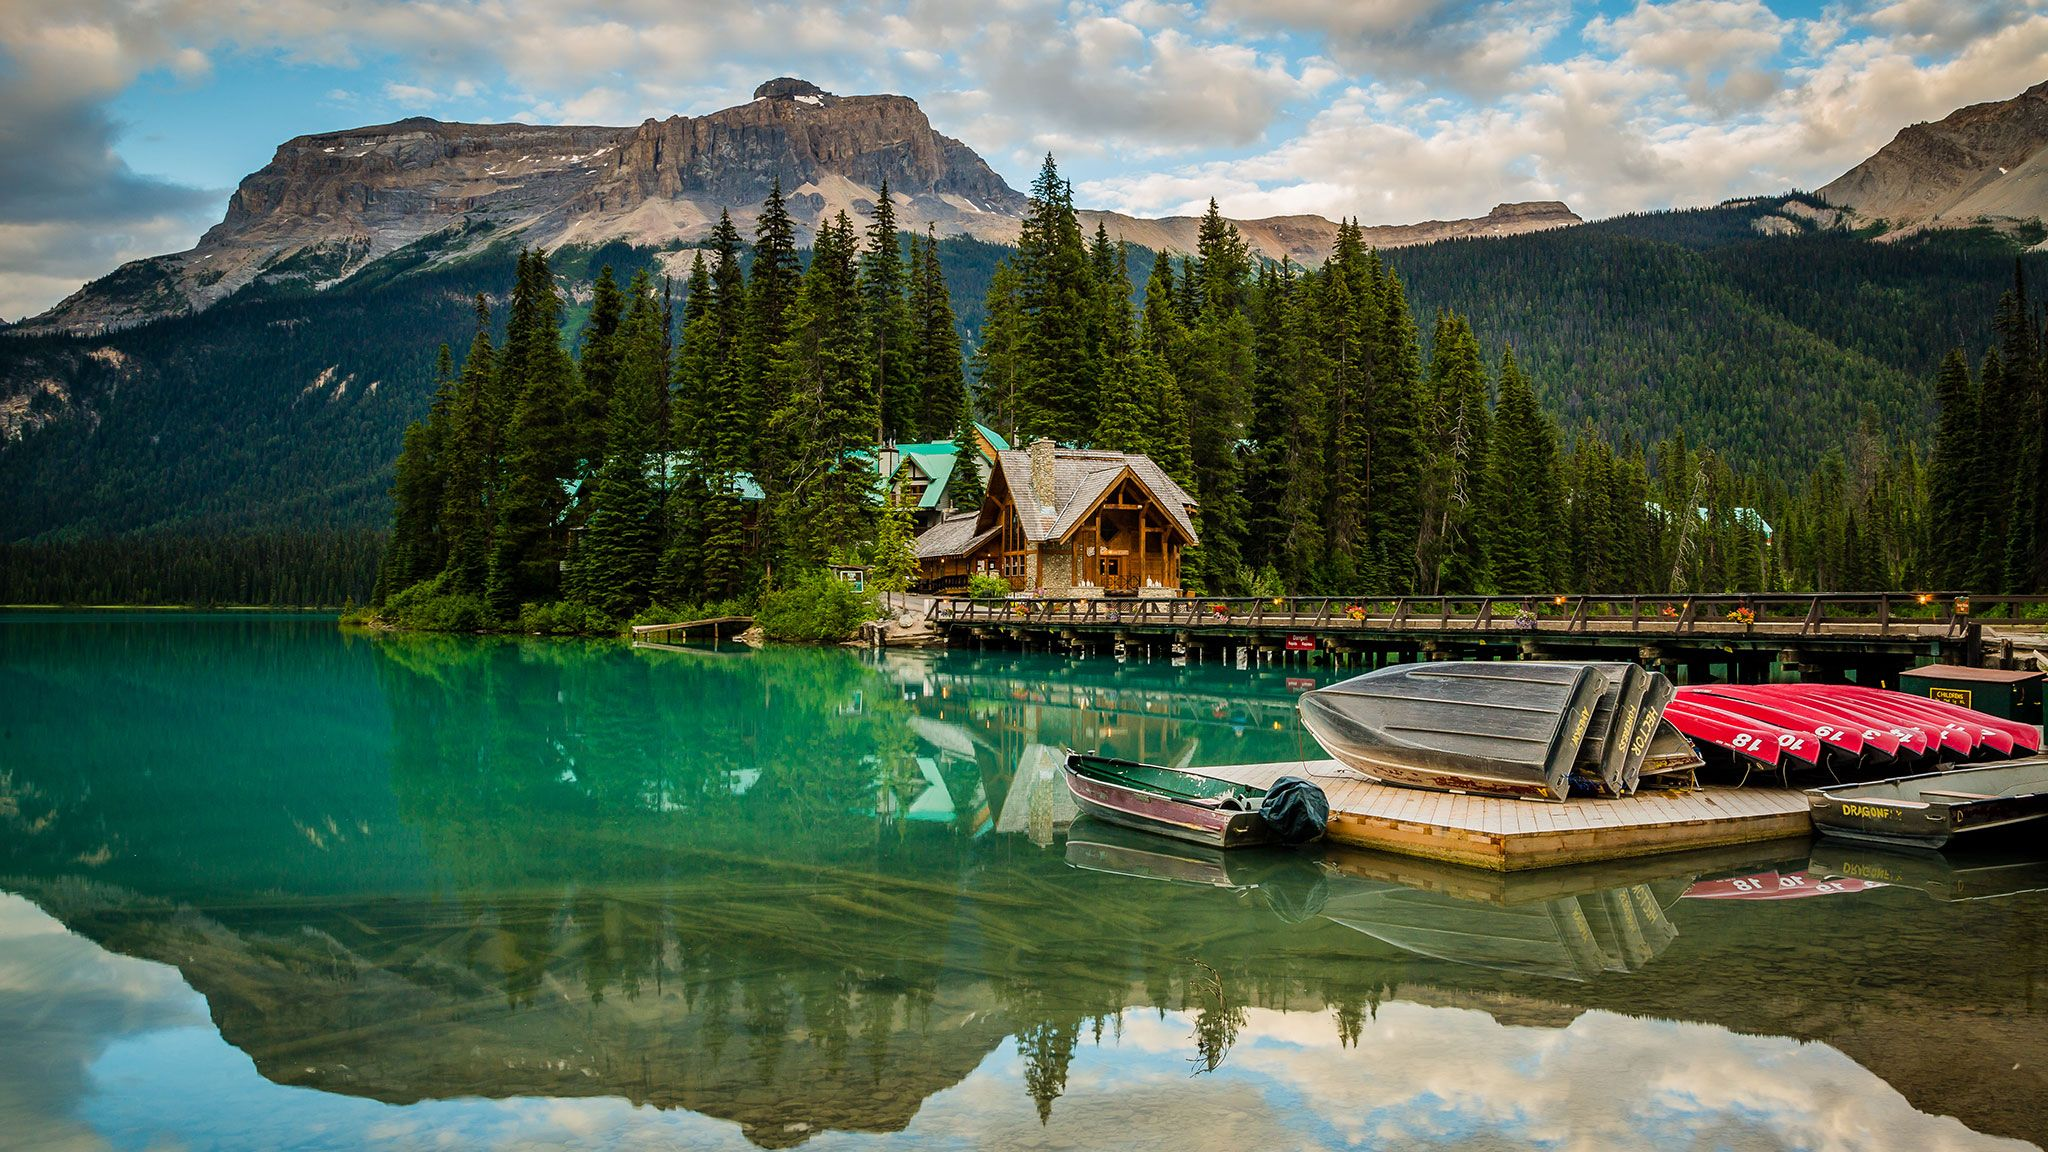 Emerald Lake Lodge Yoho National Park Canada Overlooking Emerald Lake This Canadian Lodge Is Surrounded By The For Places To Travel Lake Hotel National Parks